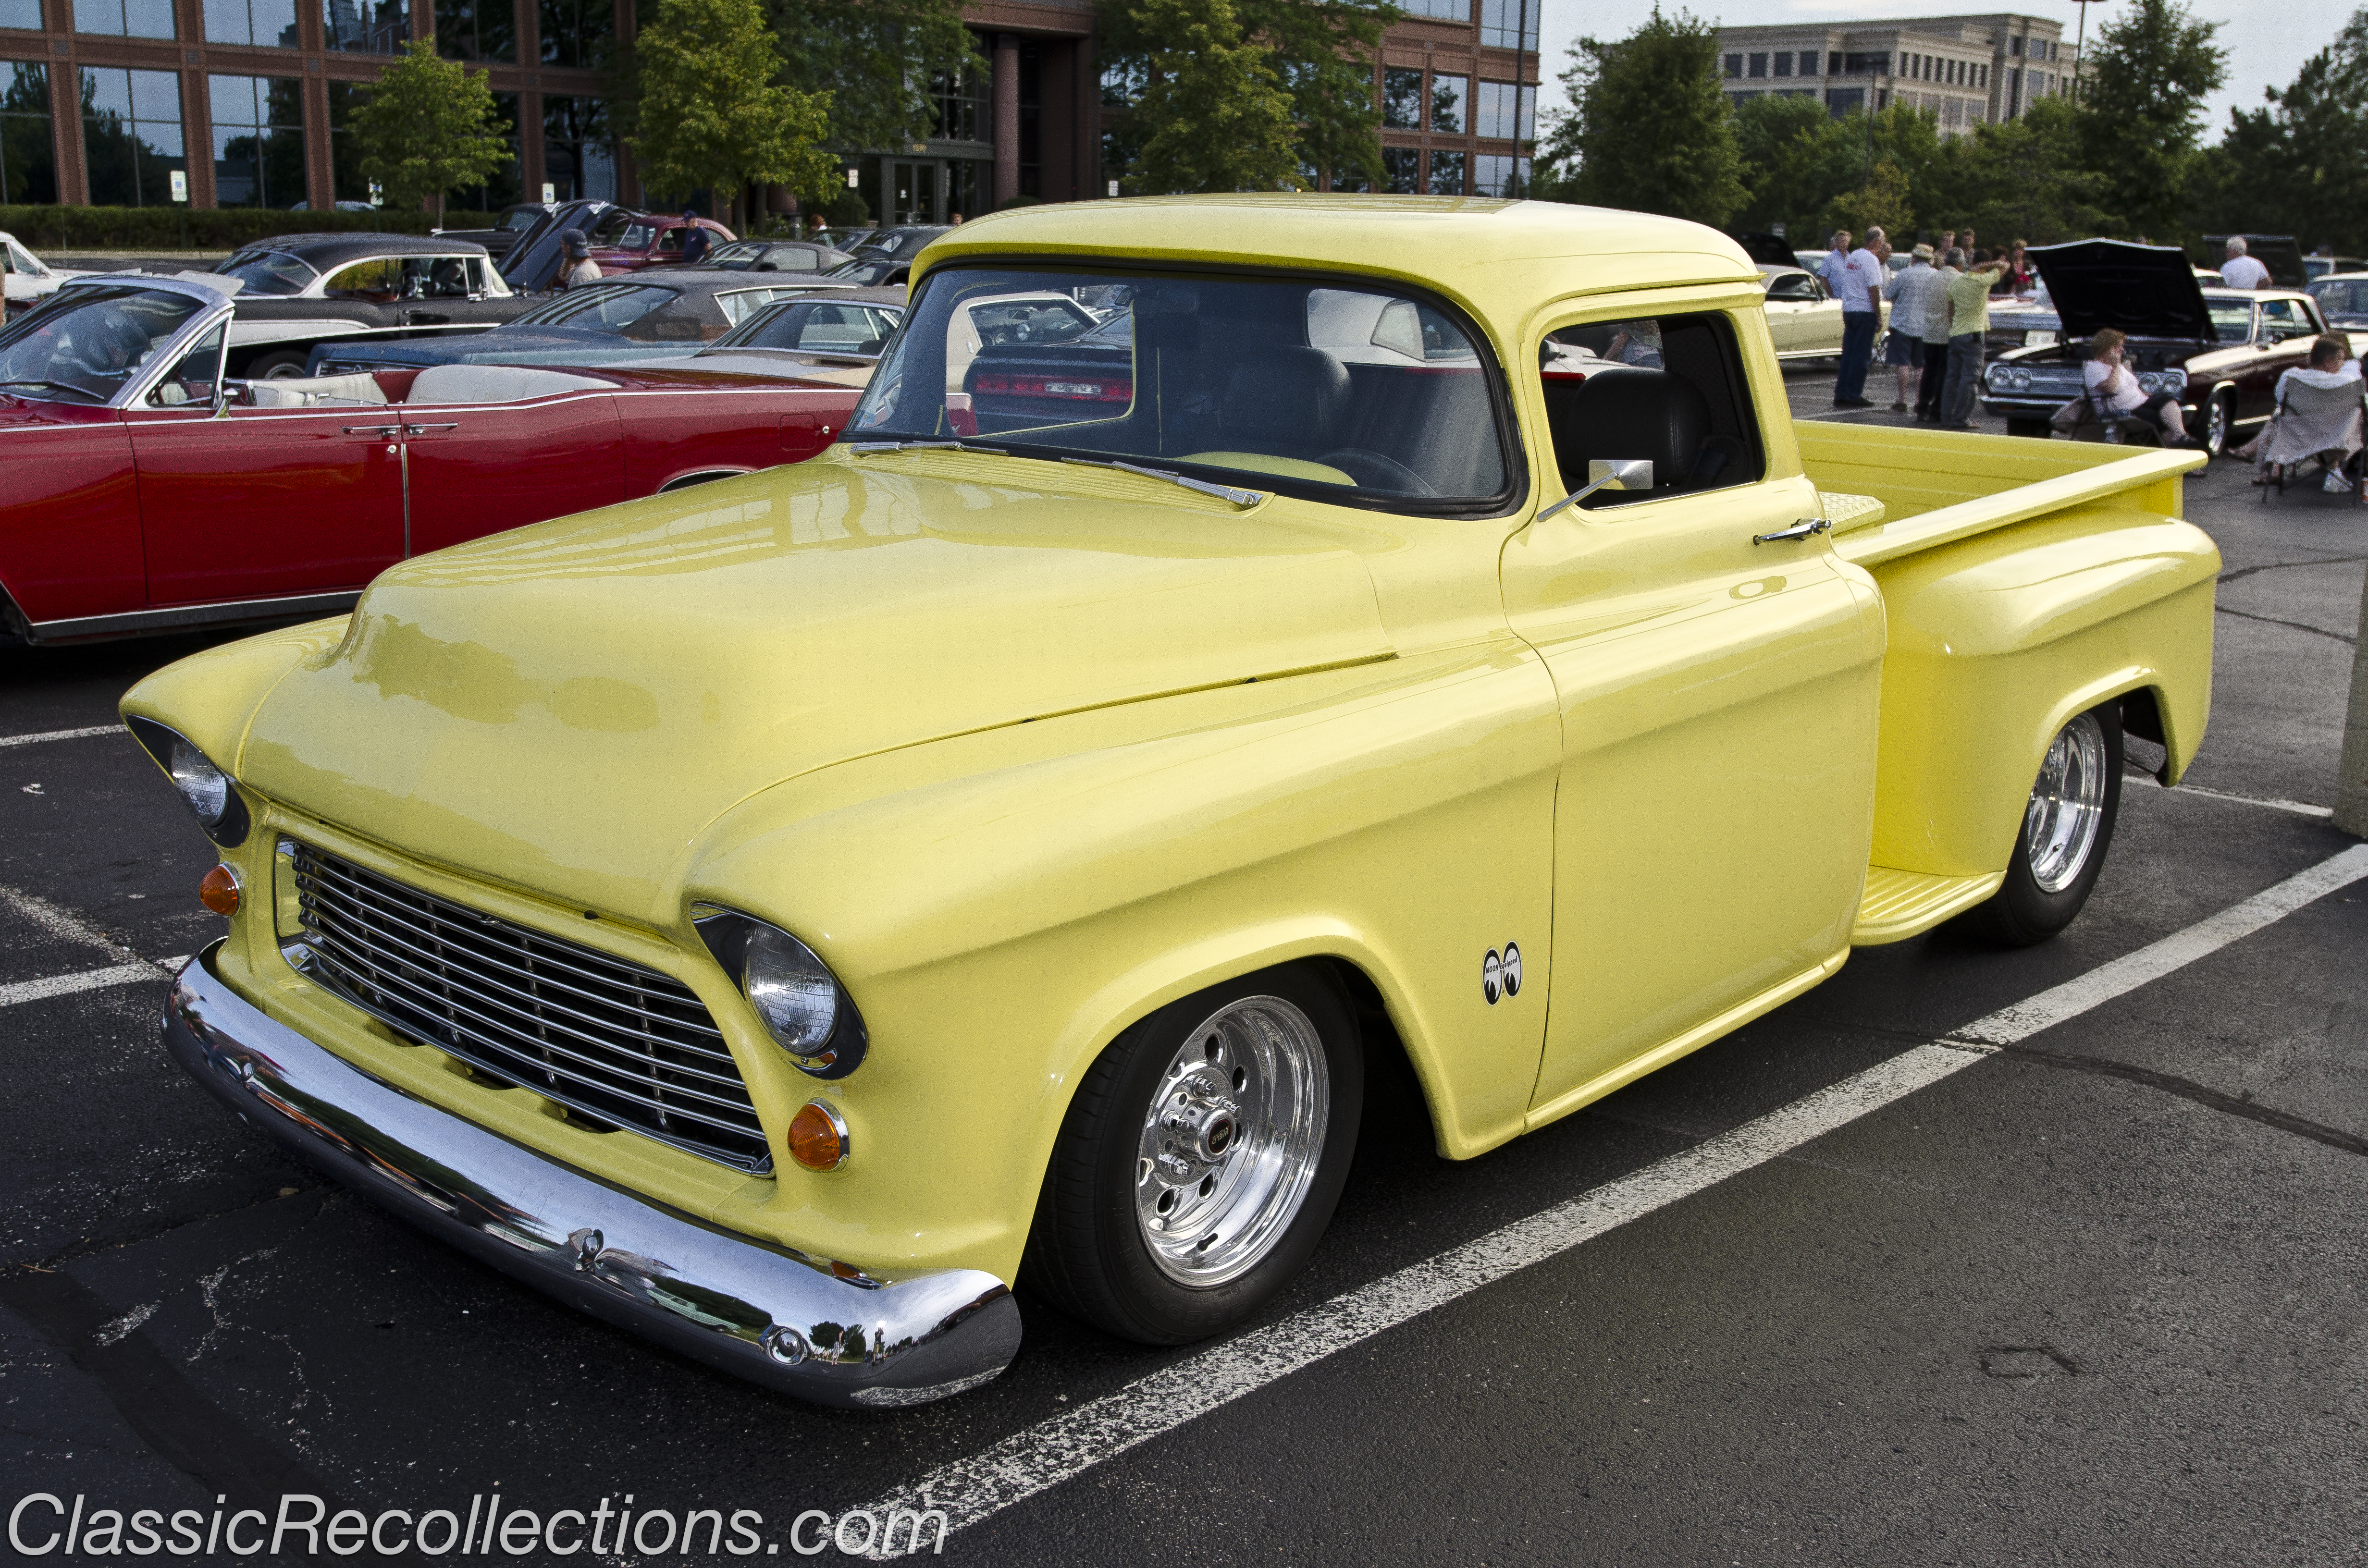 FEATURE: 1956 Chevrolet 3100 Pickup – Classic Recollections